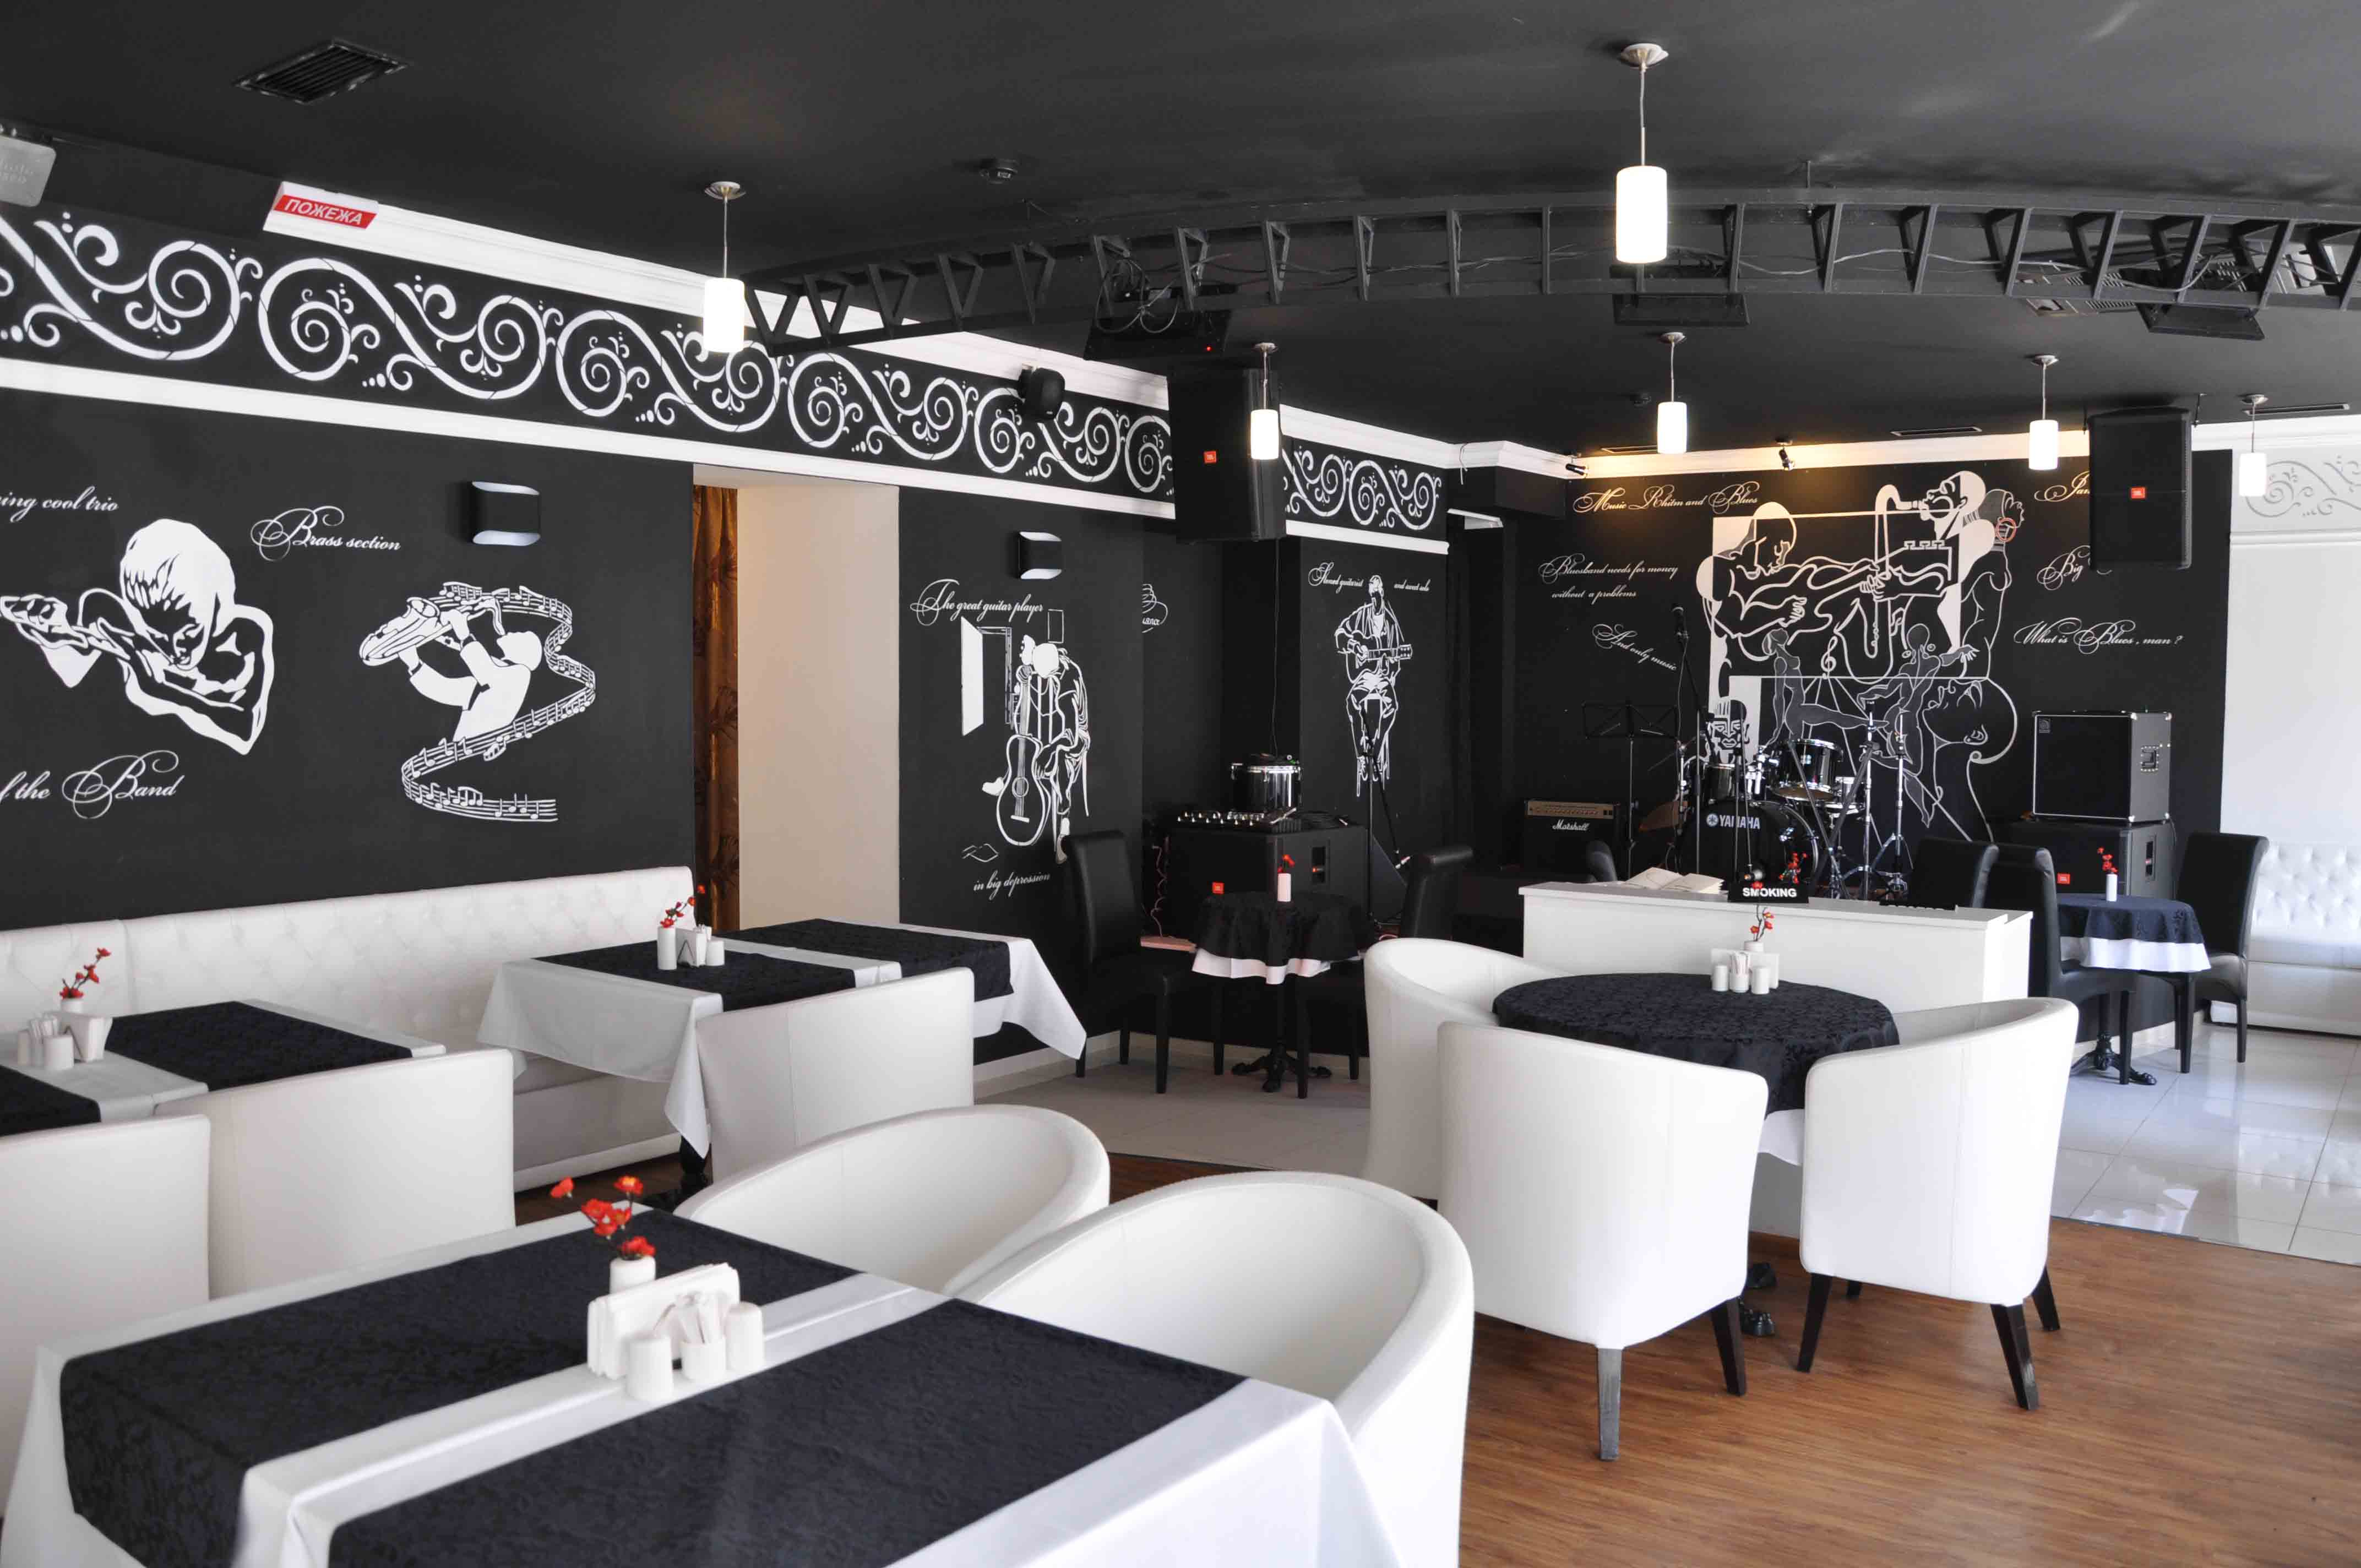 Stylish restaurant furniture design decor or